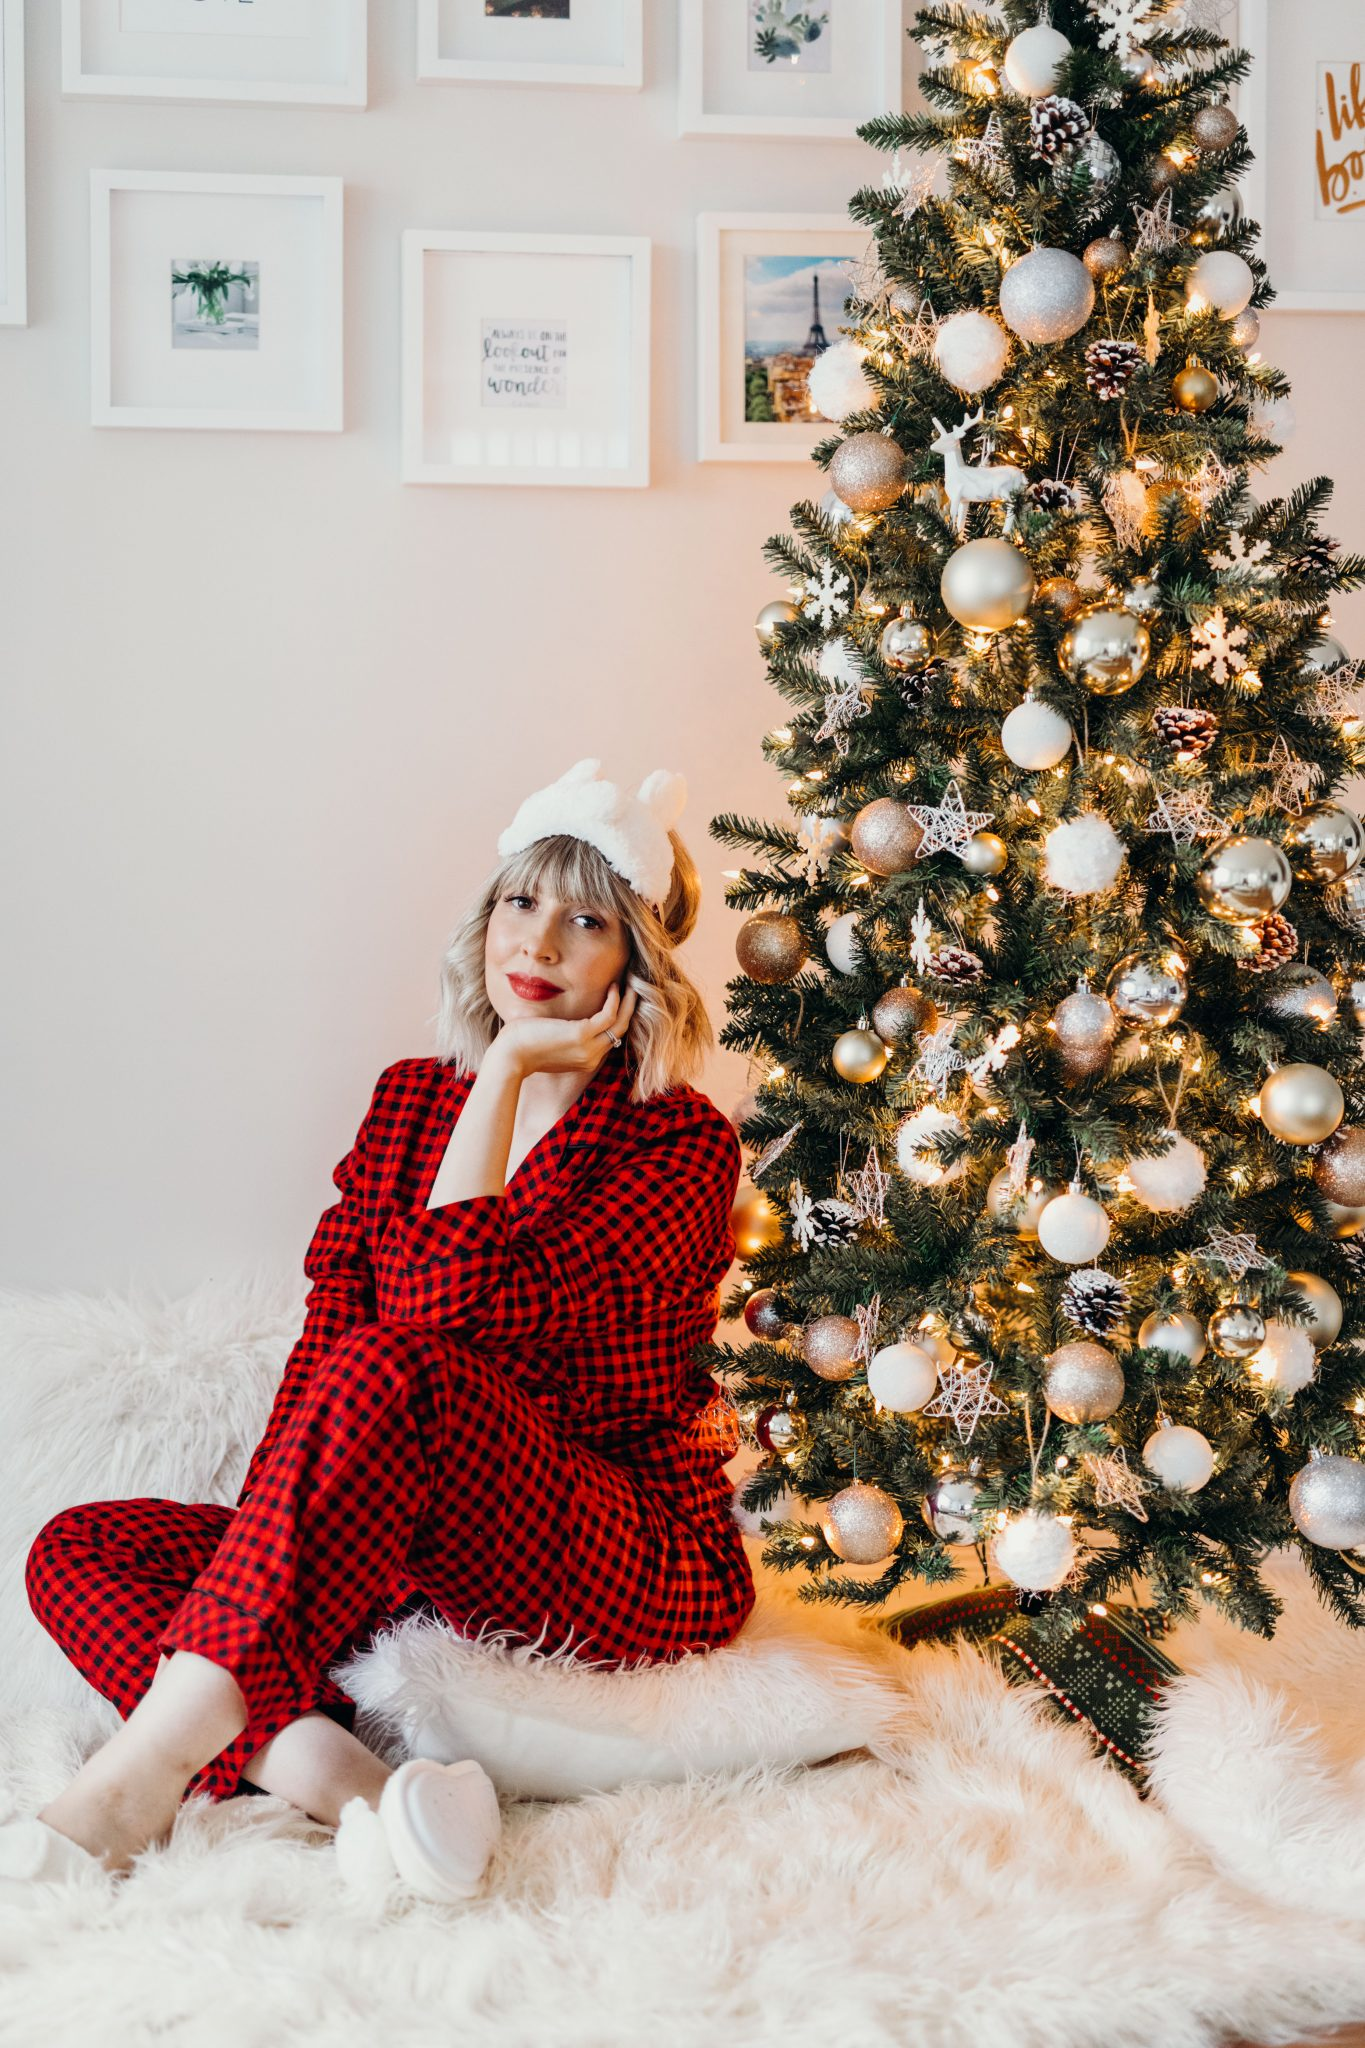 Christmas Pyjamas Roundup